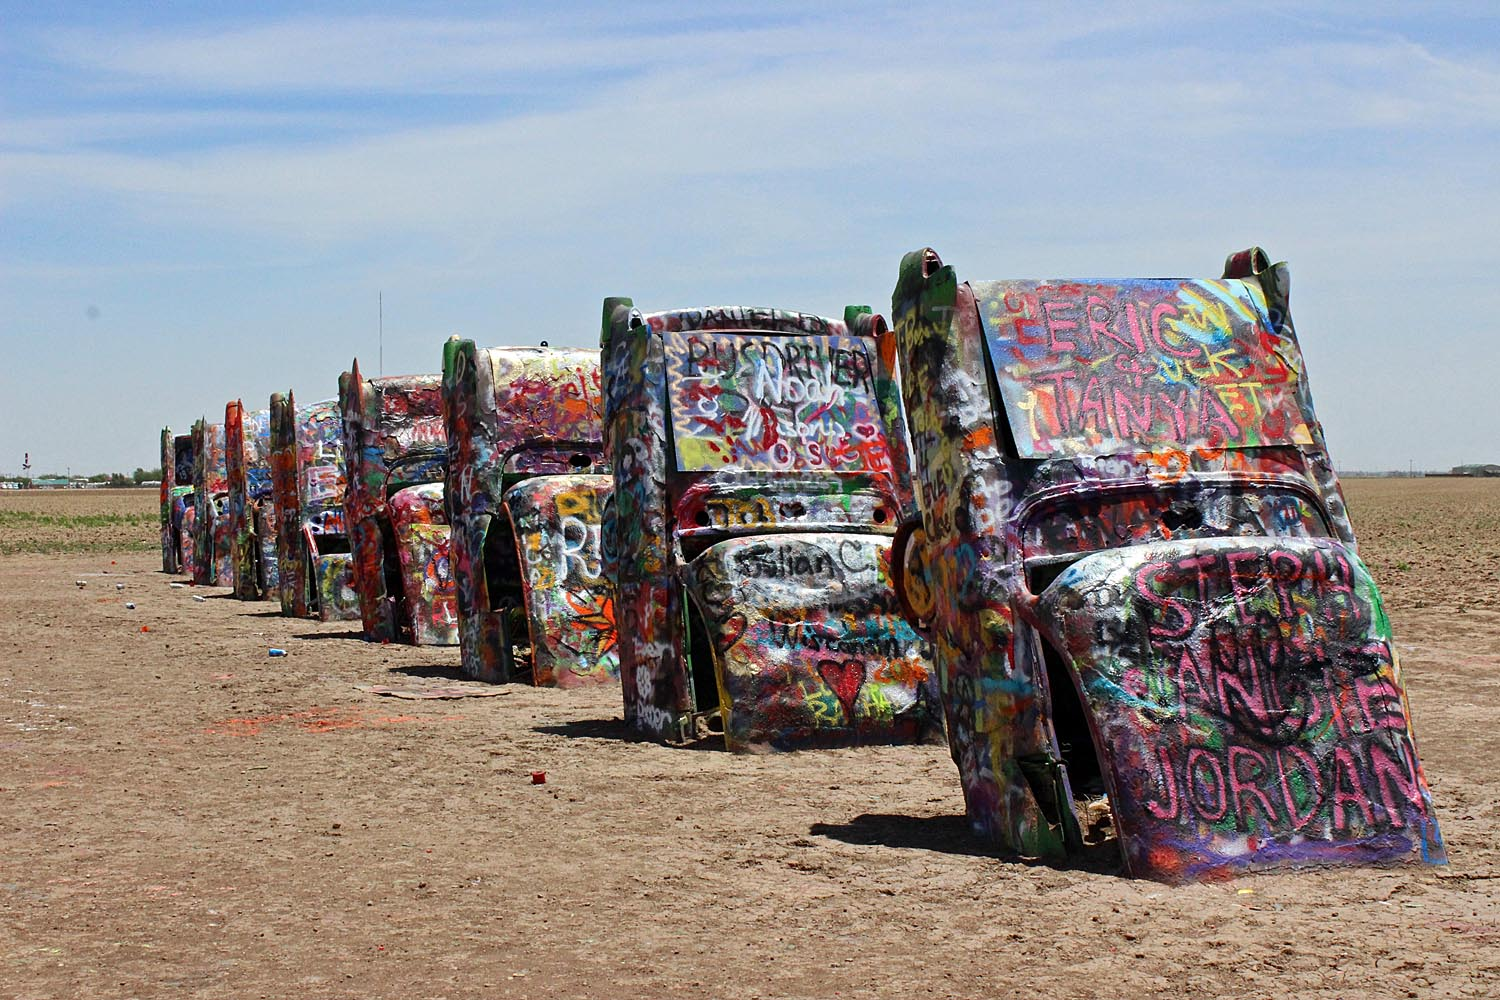 Best Place to Vacation in Texas-Amarillo, Cadillac Ranch